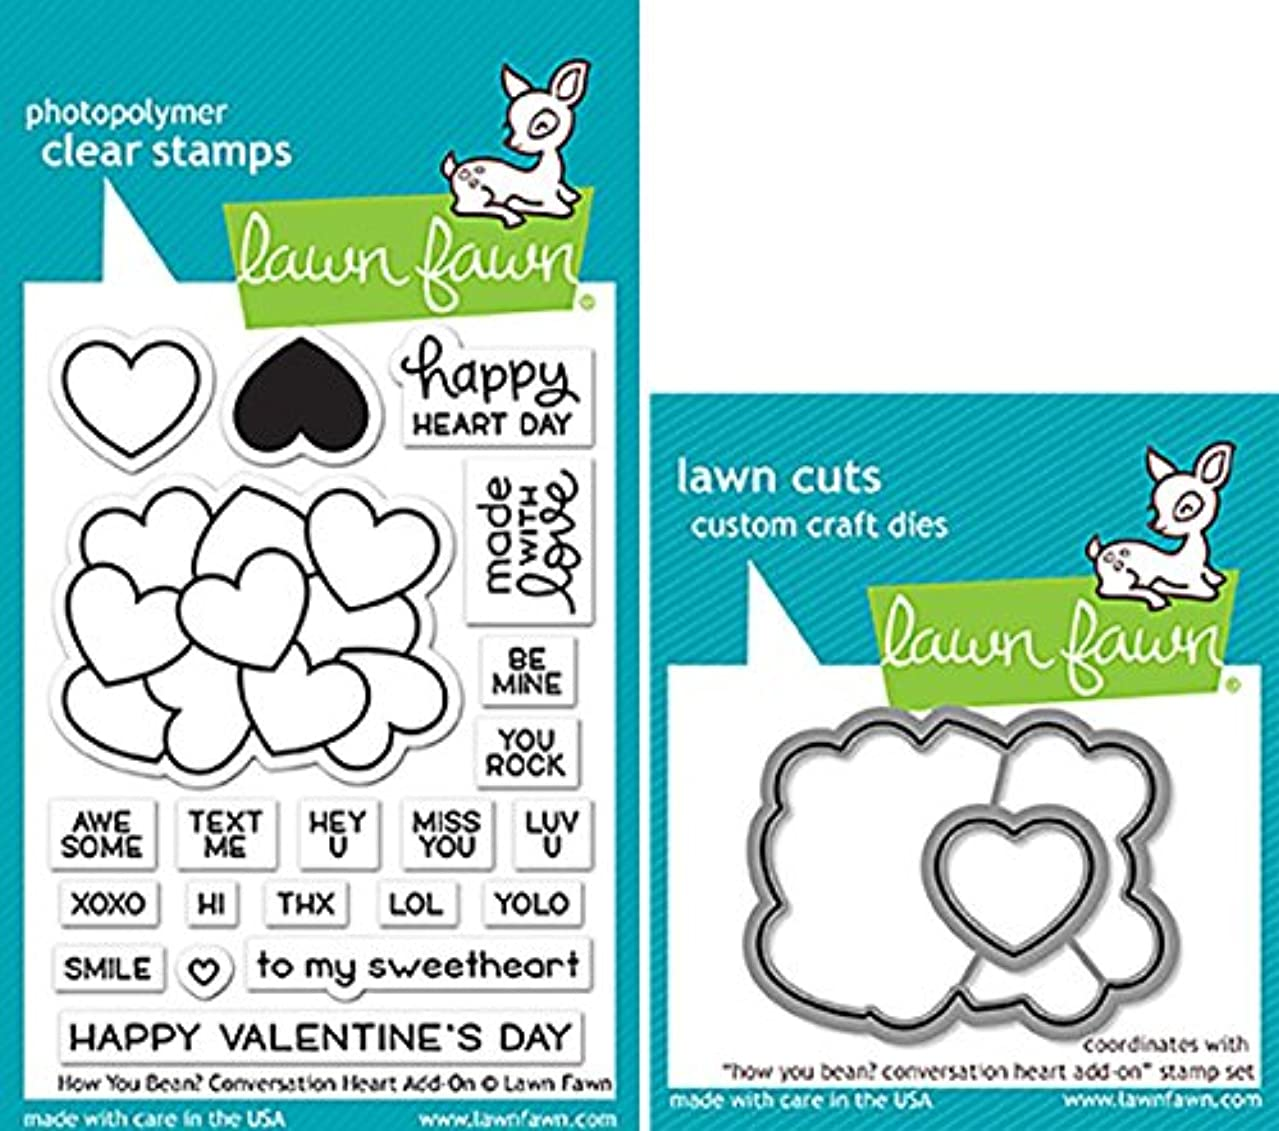 Lawn Fawn How You Bean Conversation Heart Add-On Clear Stamps and Dies Bundle LF1553 LF1554 (Set of 2)